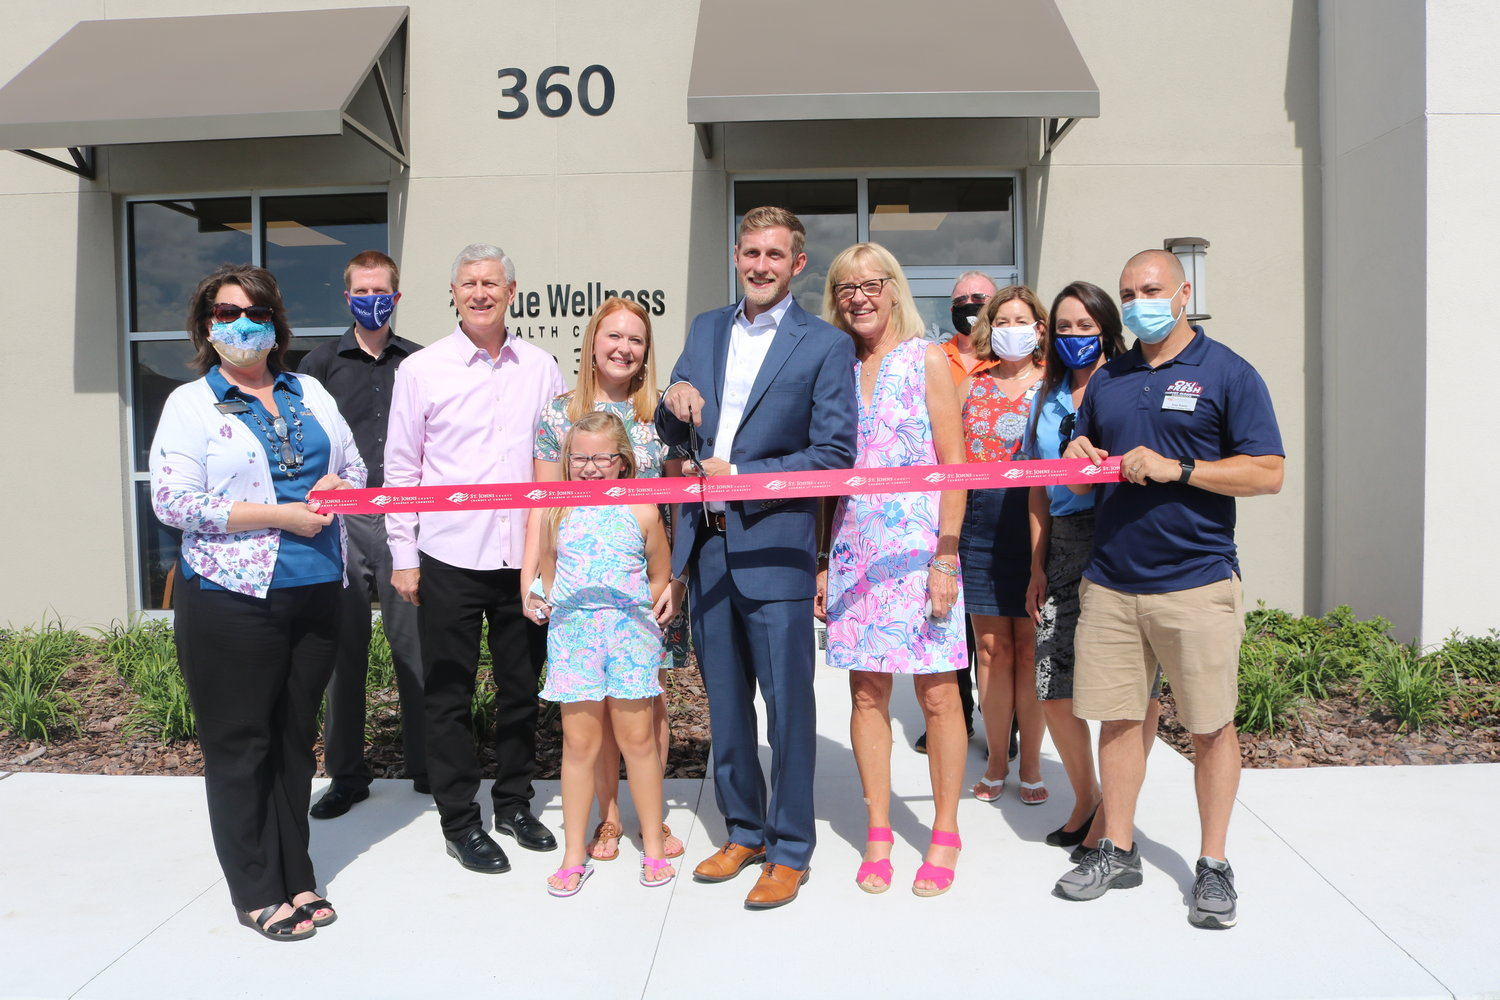 Dr. Ryan Heinz, center, with family and staff members, cuts the ribbon to celebrate the opening of True Wellness Health Center in the Nocatee Town Center on Thursday, Aug. 27